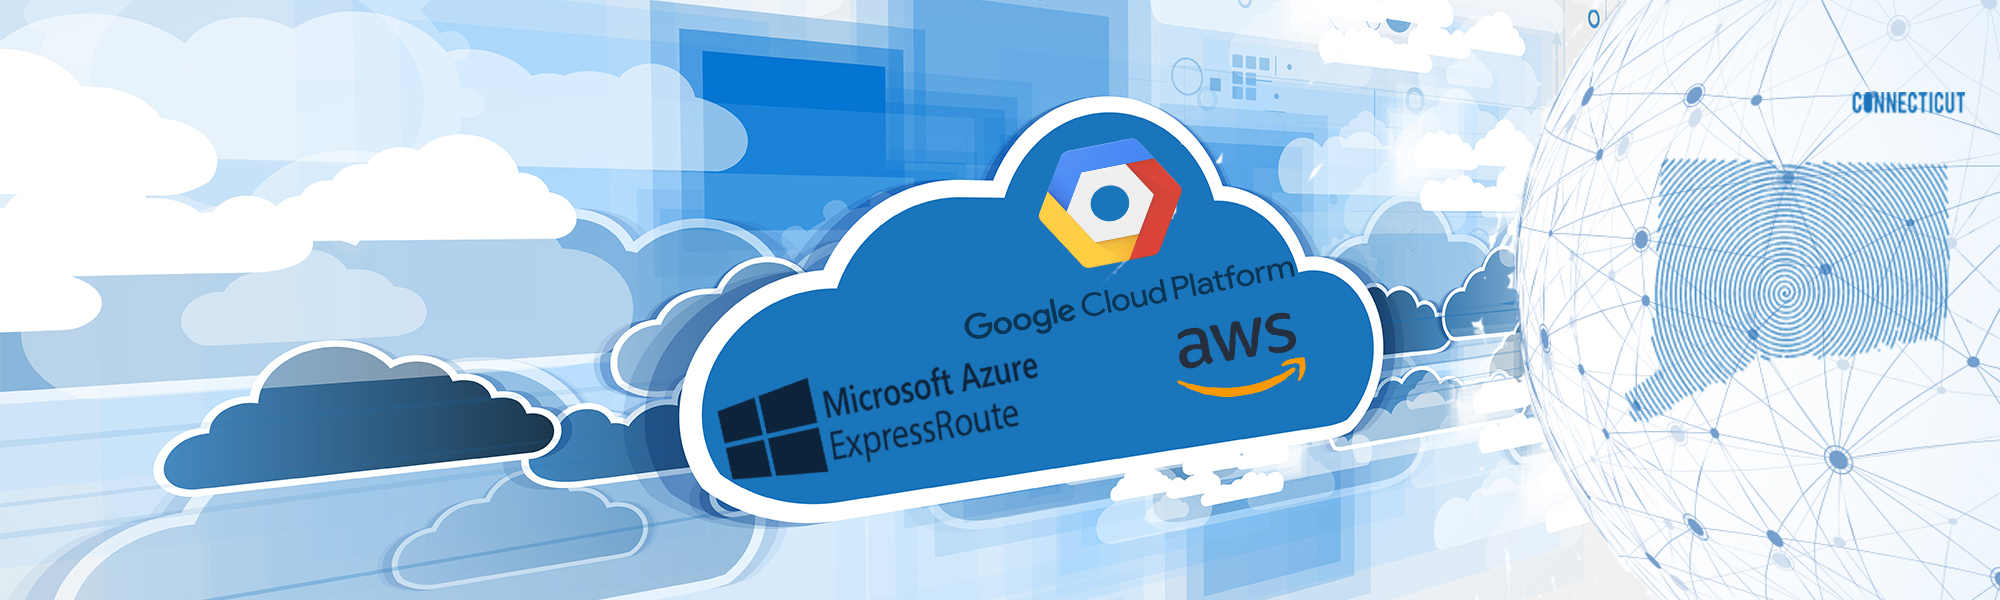 cloud icon with Google Cloud Platform logo, Microsoft Azure ExpressRoute logo, and AWS logo